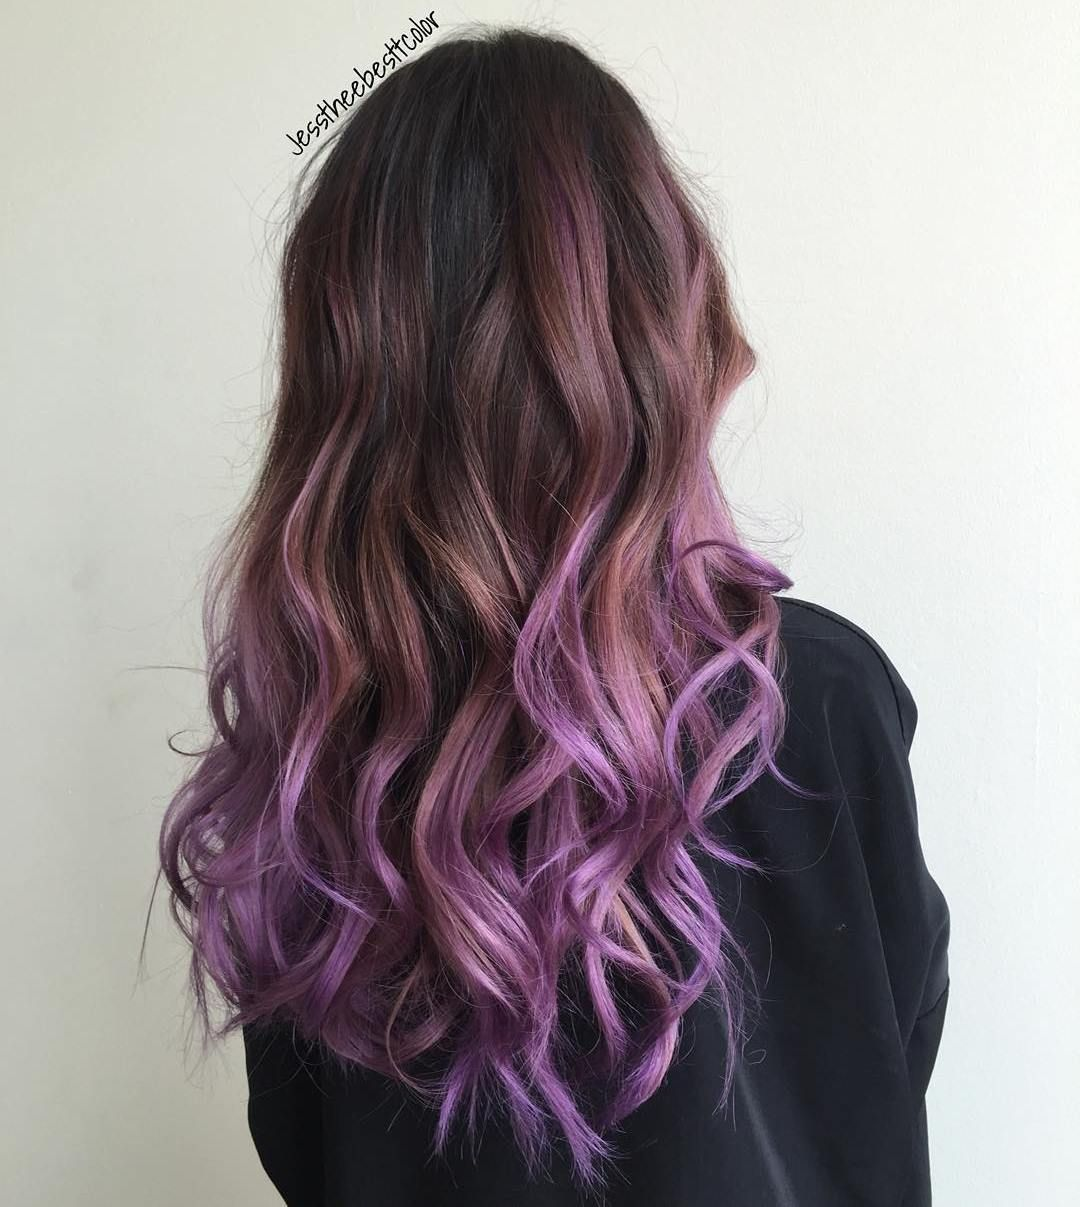 60 Best Ombre Hair Color Ideas for Blond, Brown, Red and ...- photo #26